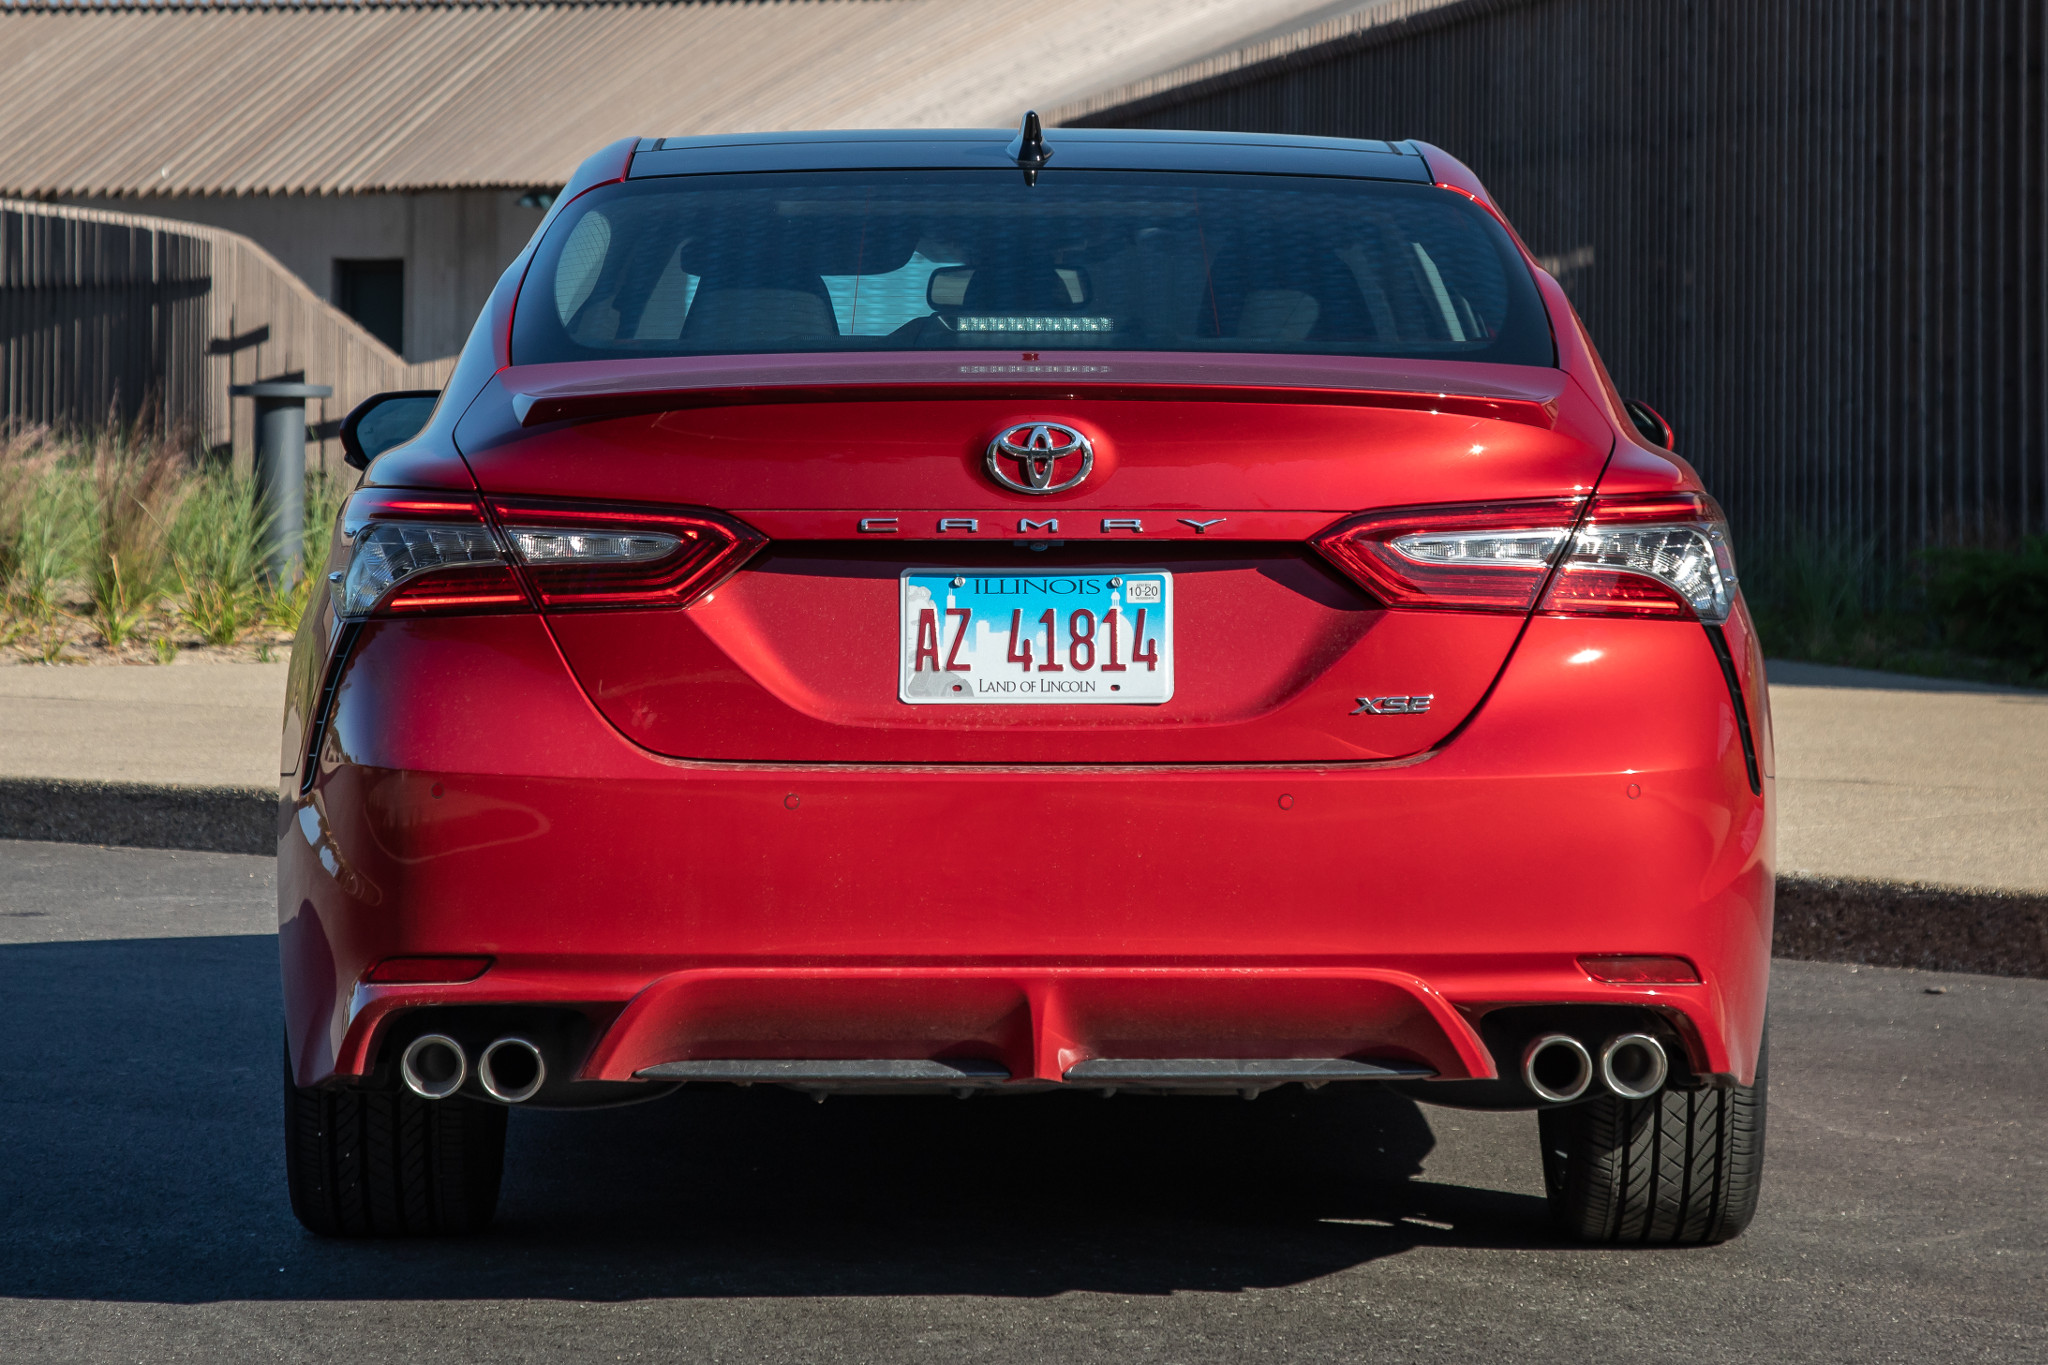 2019 Toyota Camry: 8 Things We Like (and 4 Not So Much)